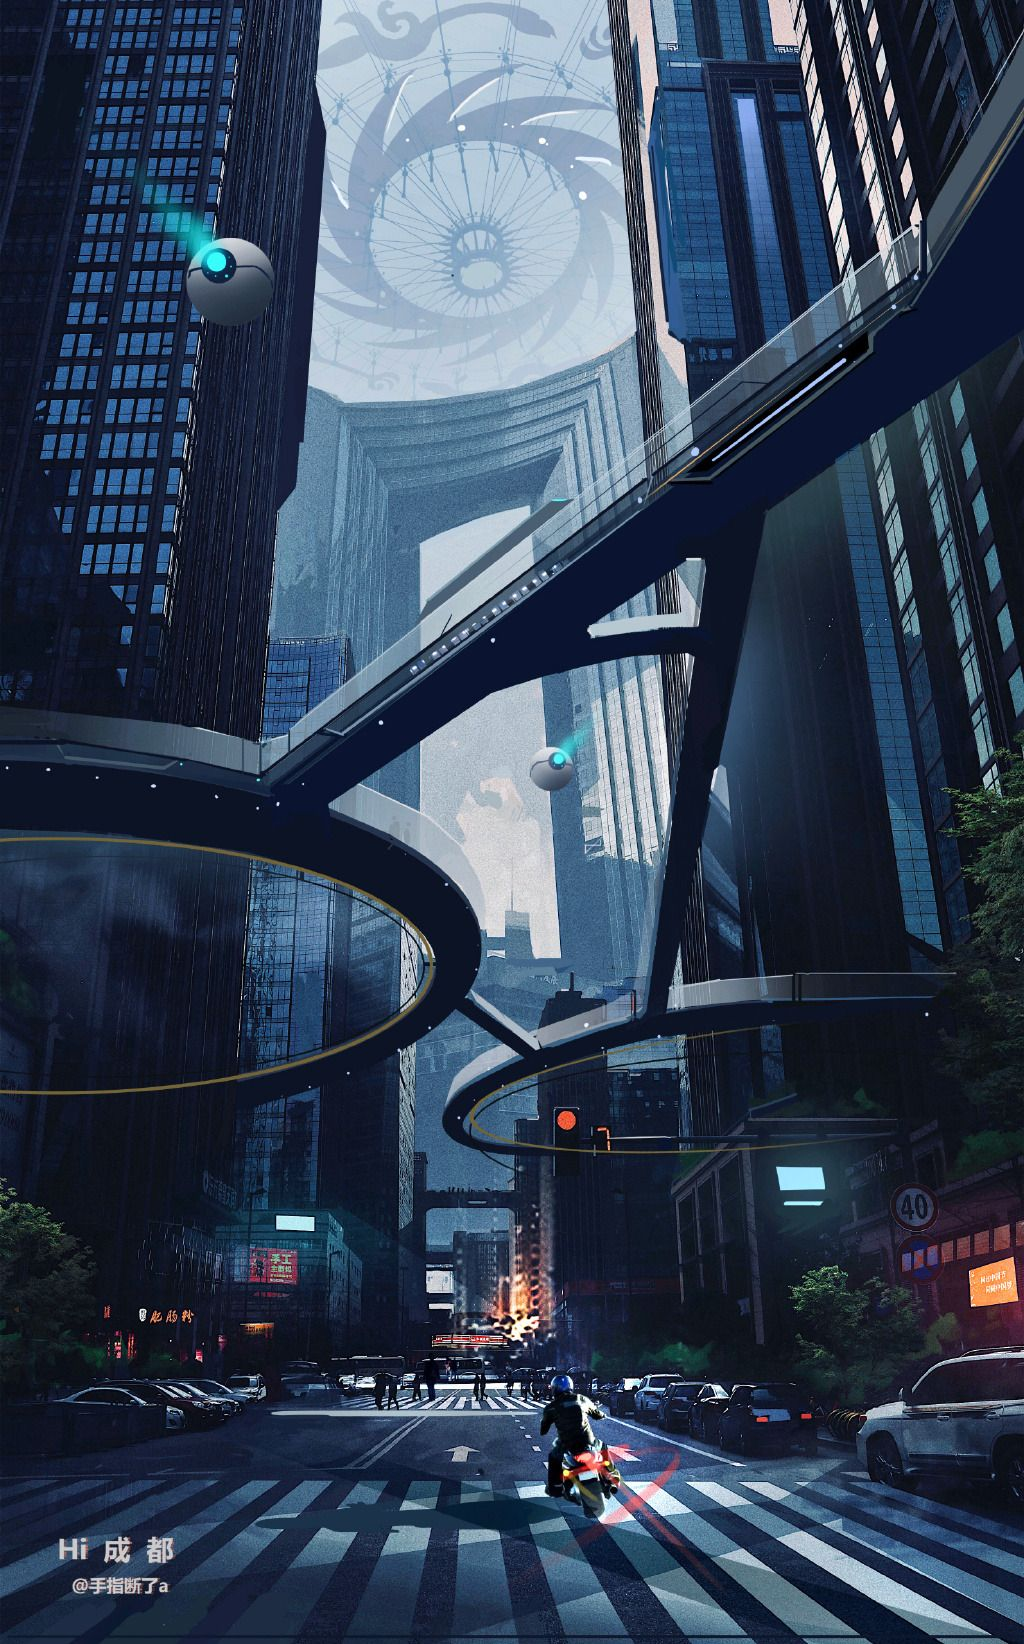 长安月 — Street view of Chinese city in the future... | Futuristic city,  Cyberpunk city, Futuristic architecture